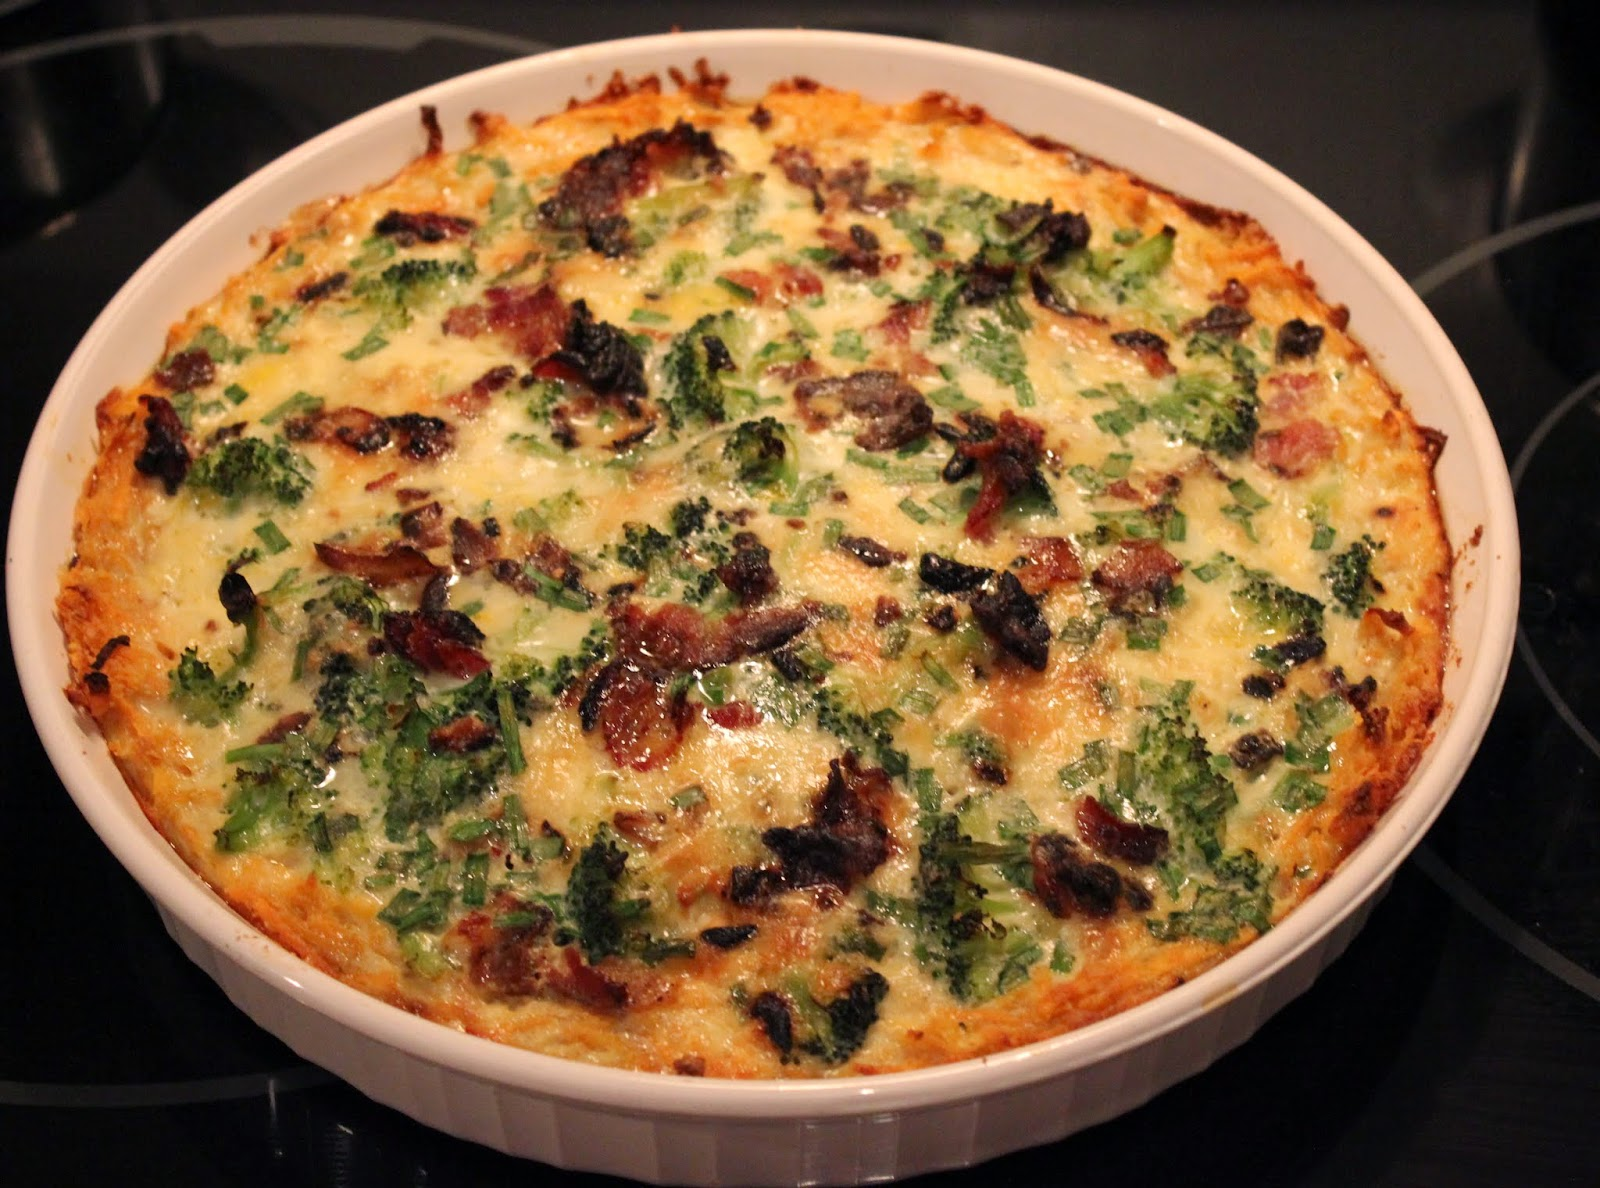 ... Free Travels: Paleo Bacon Broccoli Quiche with Sweet Potato Crust